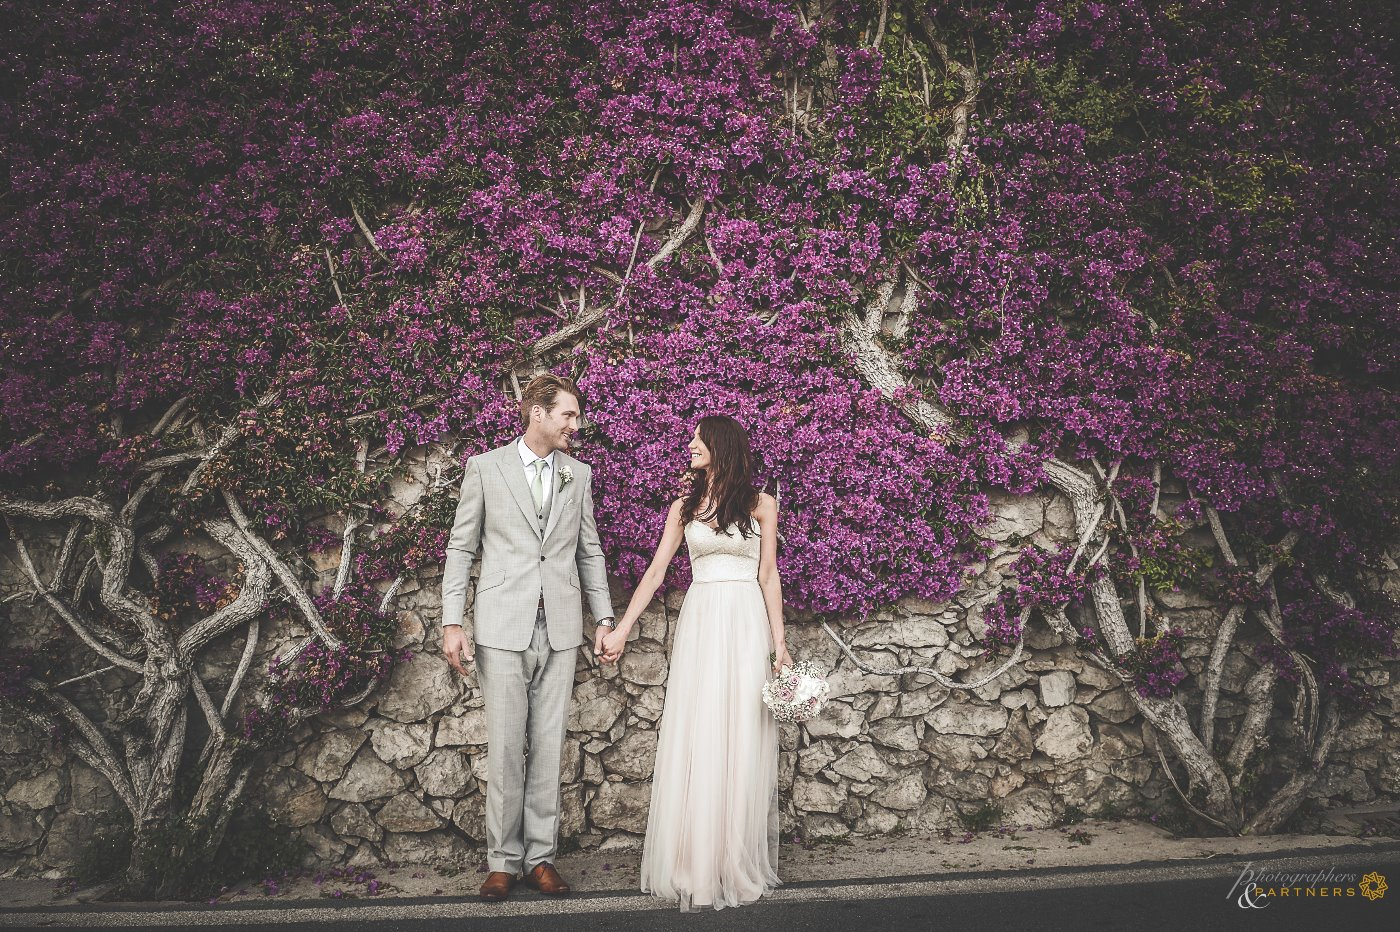 photography_weddings_capri_11.jpg